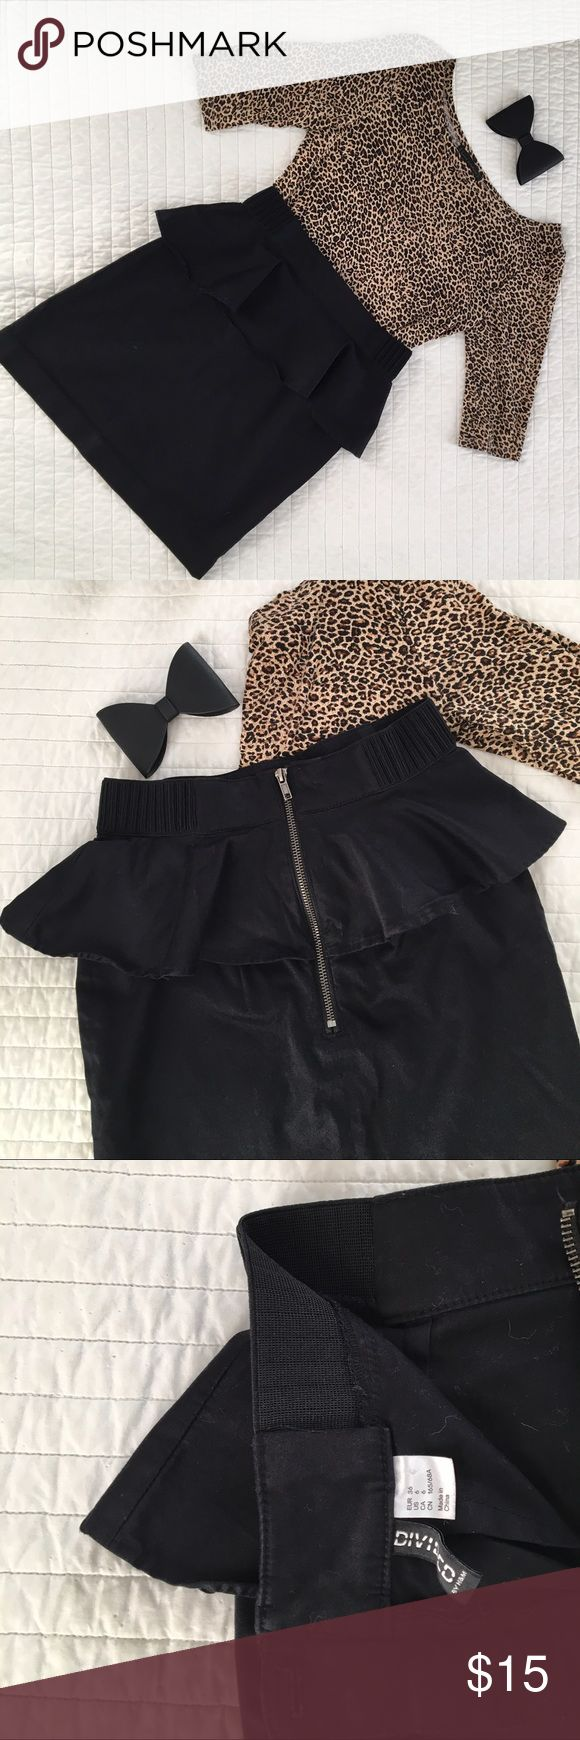 H&M Black Peplum Skirt - Size 6 H&M Black Peplum Skirt - Size 6 - very cute black peplum skirt with exposed zipper - EUC H&M Skirts Mini